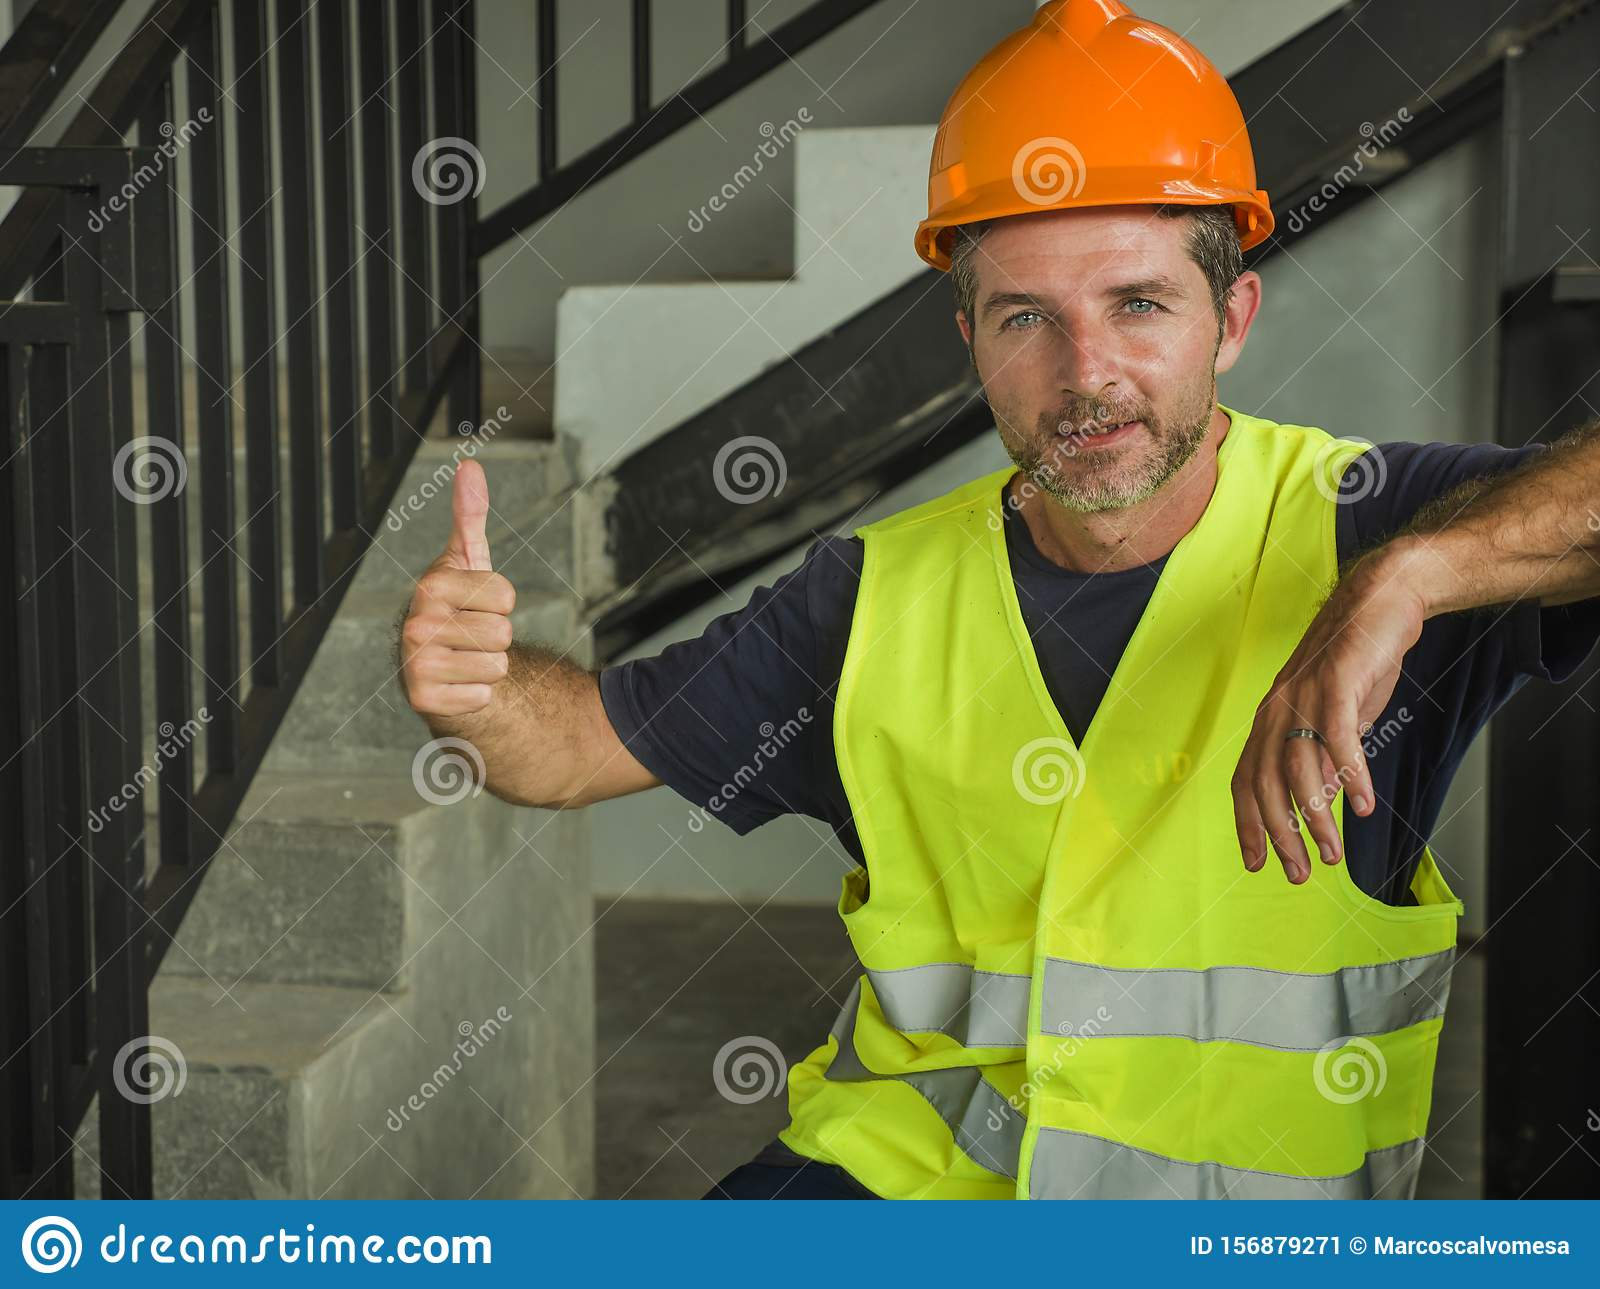 Corporate portrait of young attractive and happy builder man or constructor posing confident smiling wearing building helmet and